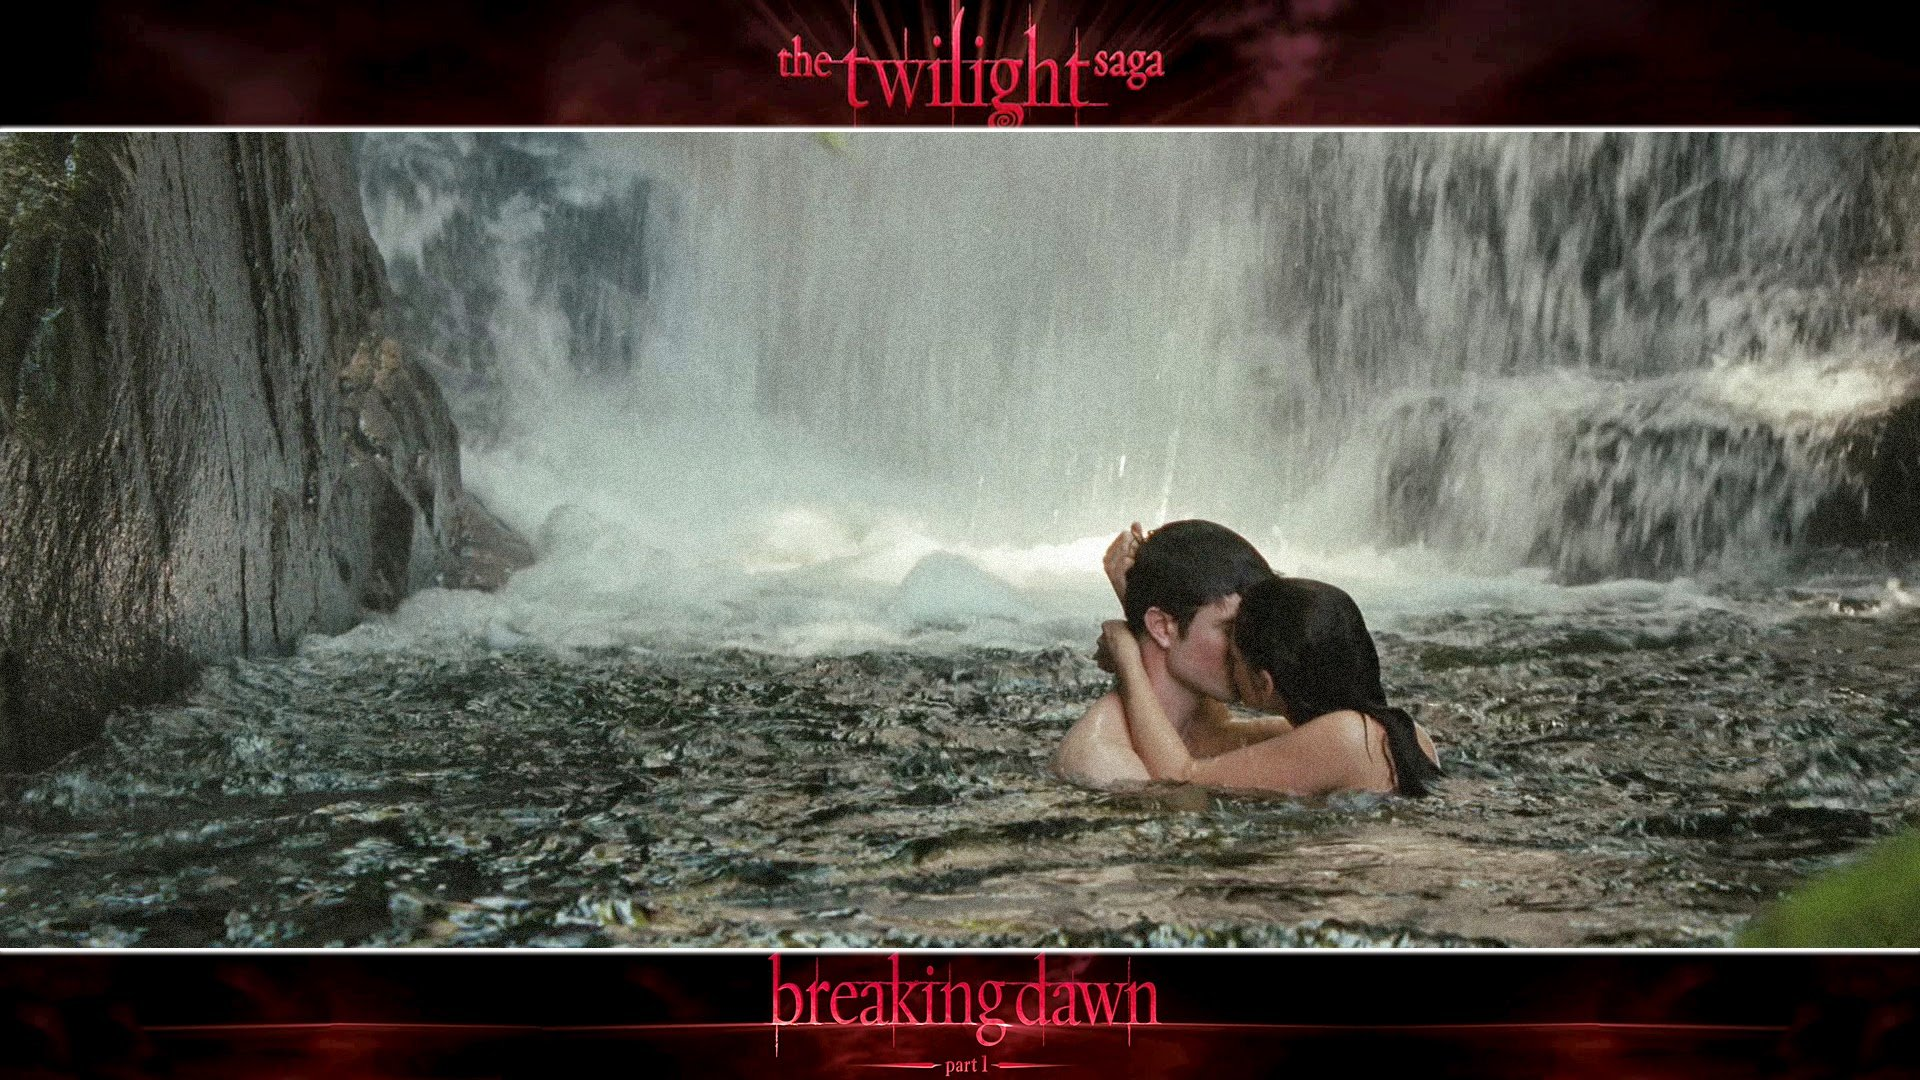 Edward and bella breaking dawn honeymoon